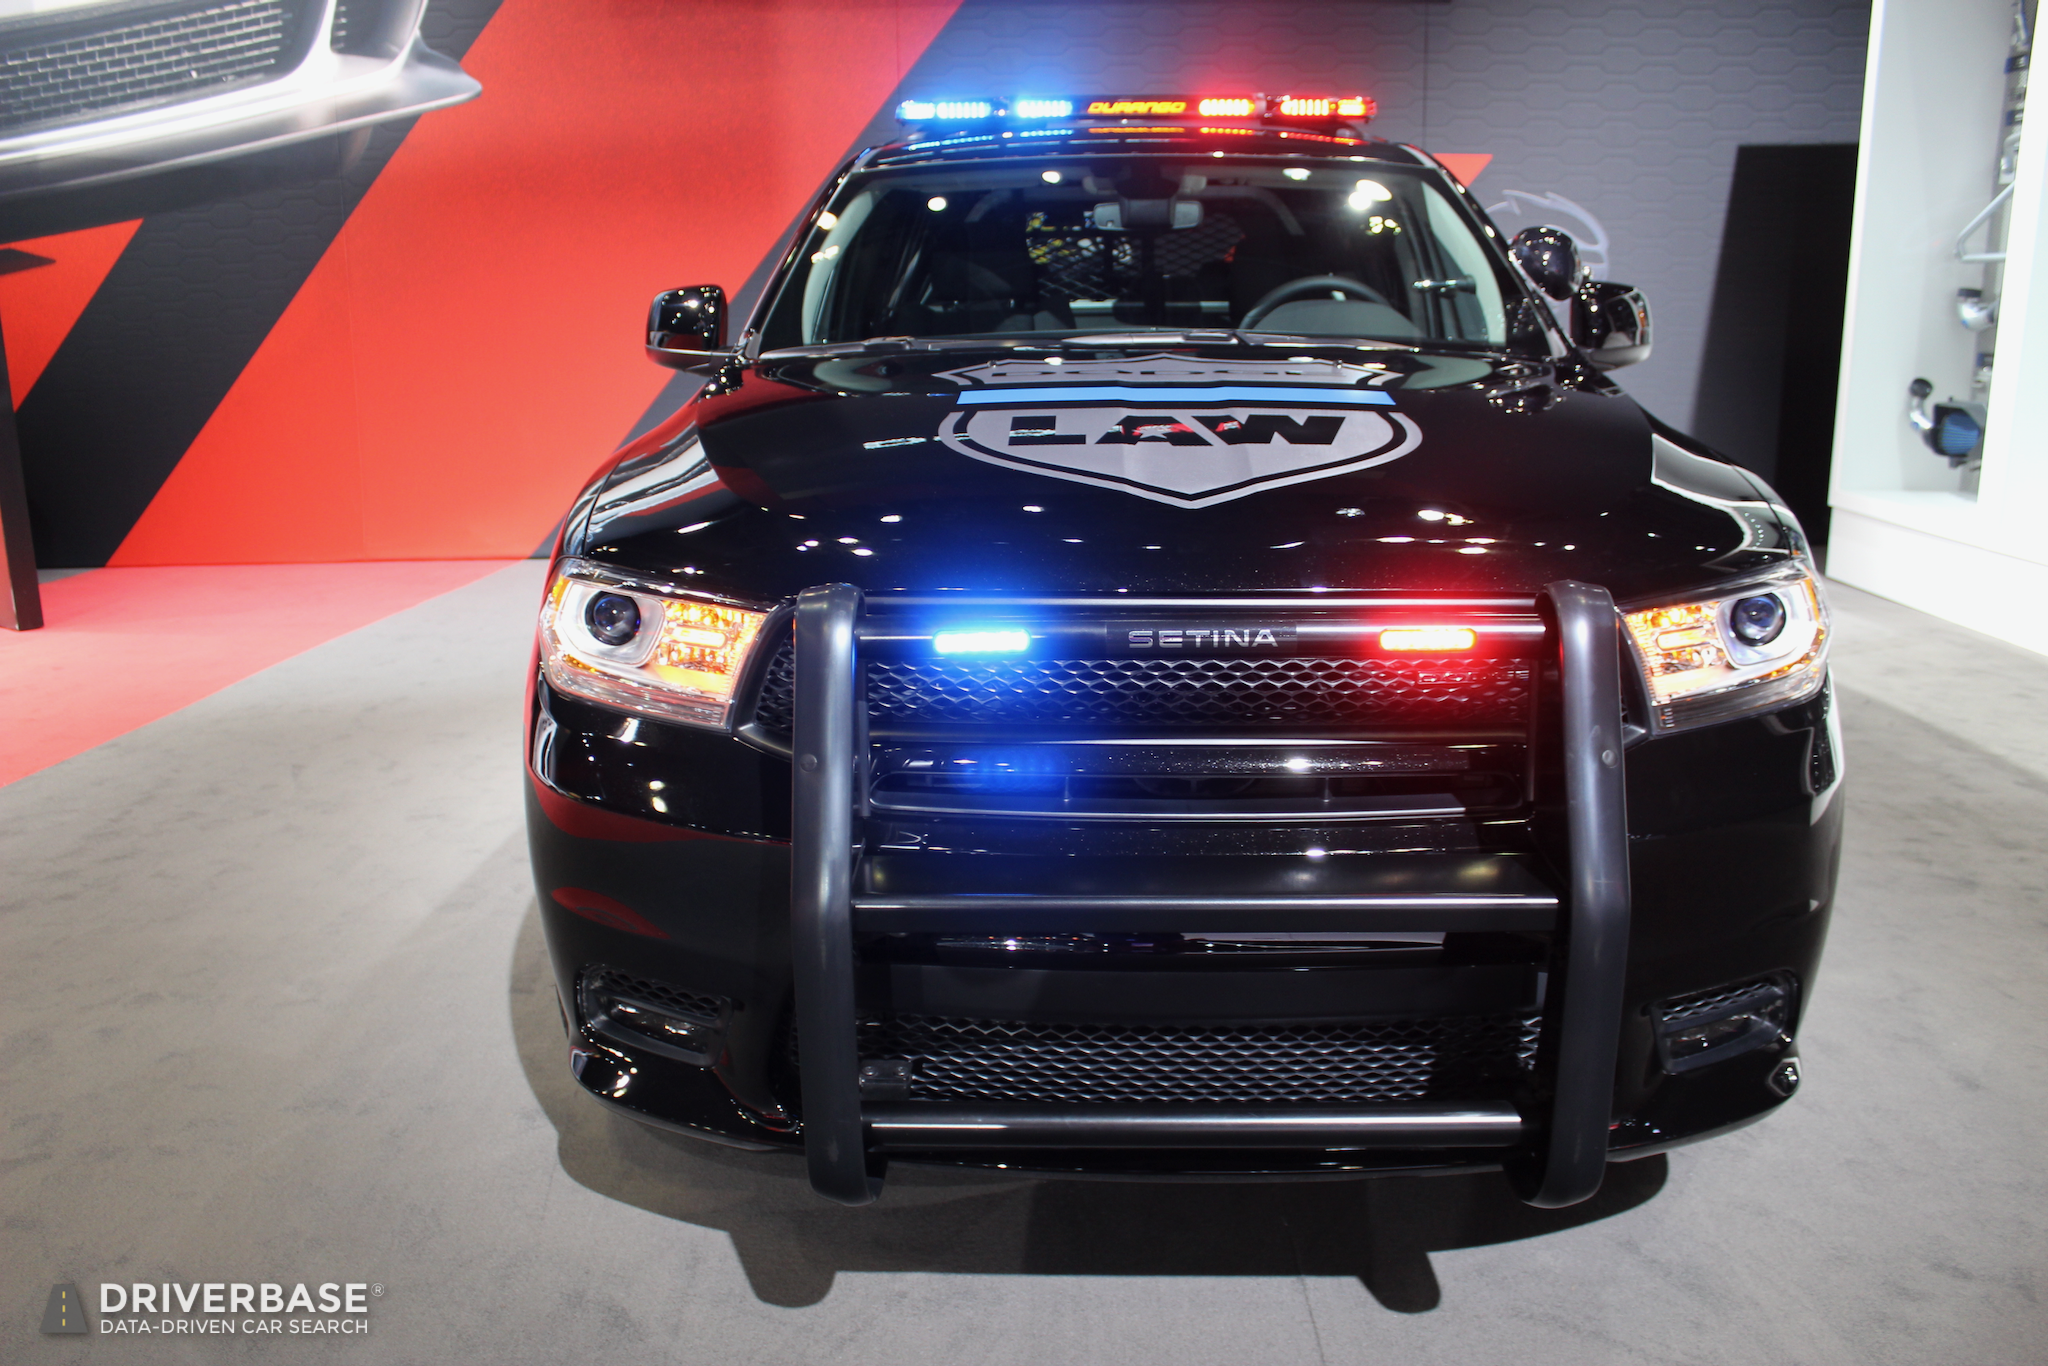 Police Cars For Sale >> 2019 Dodge Durango Pursuit Law Enforcement SUV at the 2019 New York Auto Show – Driverbase